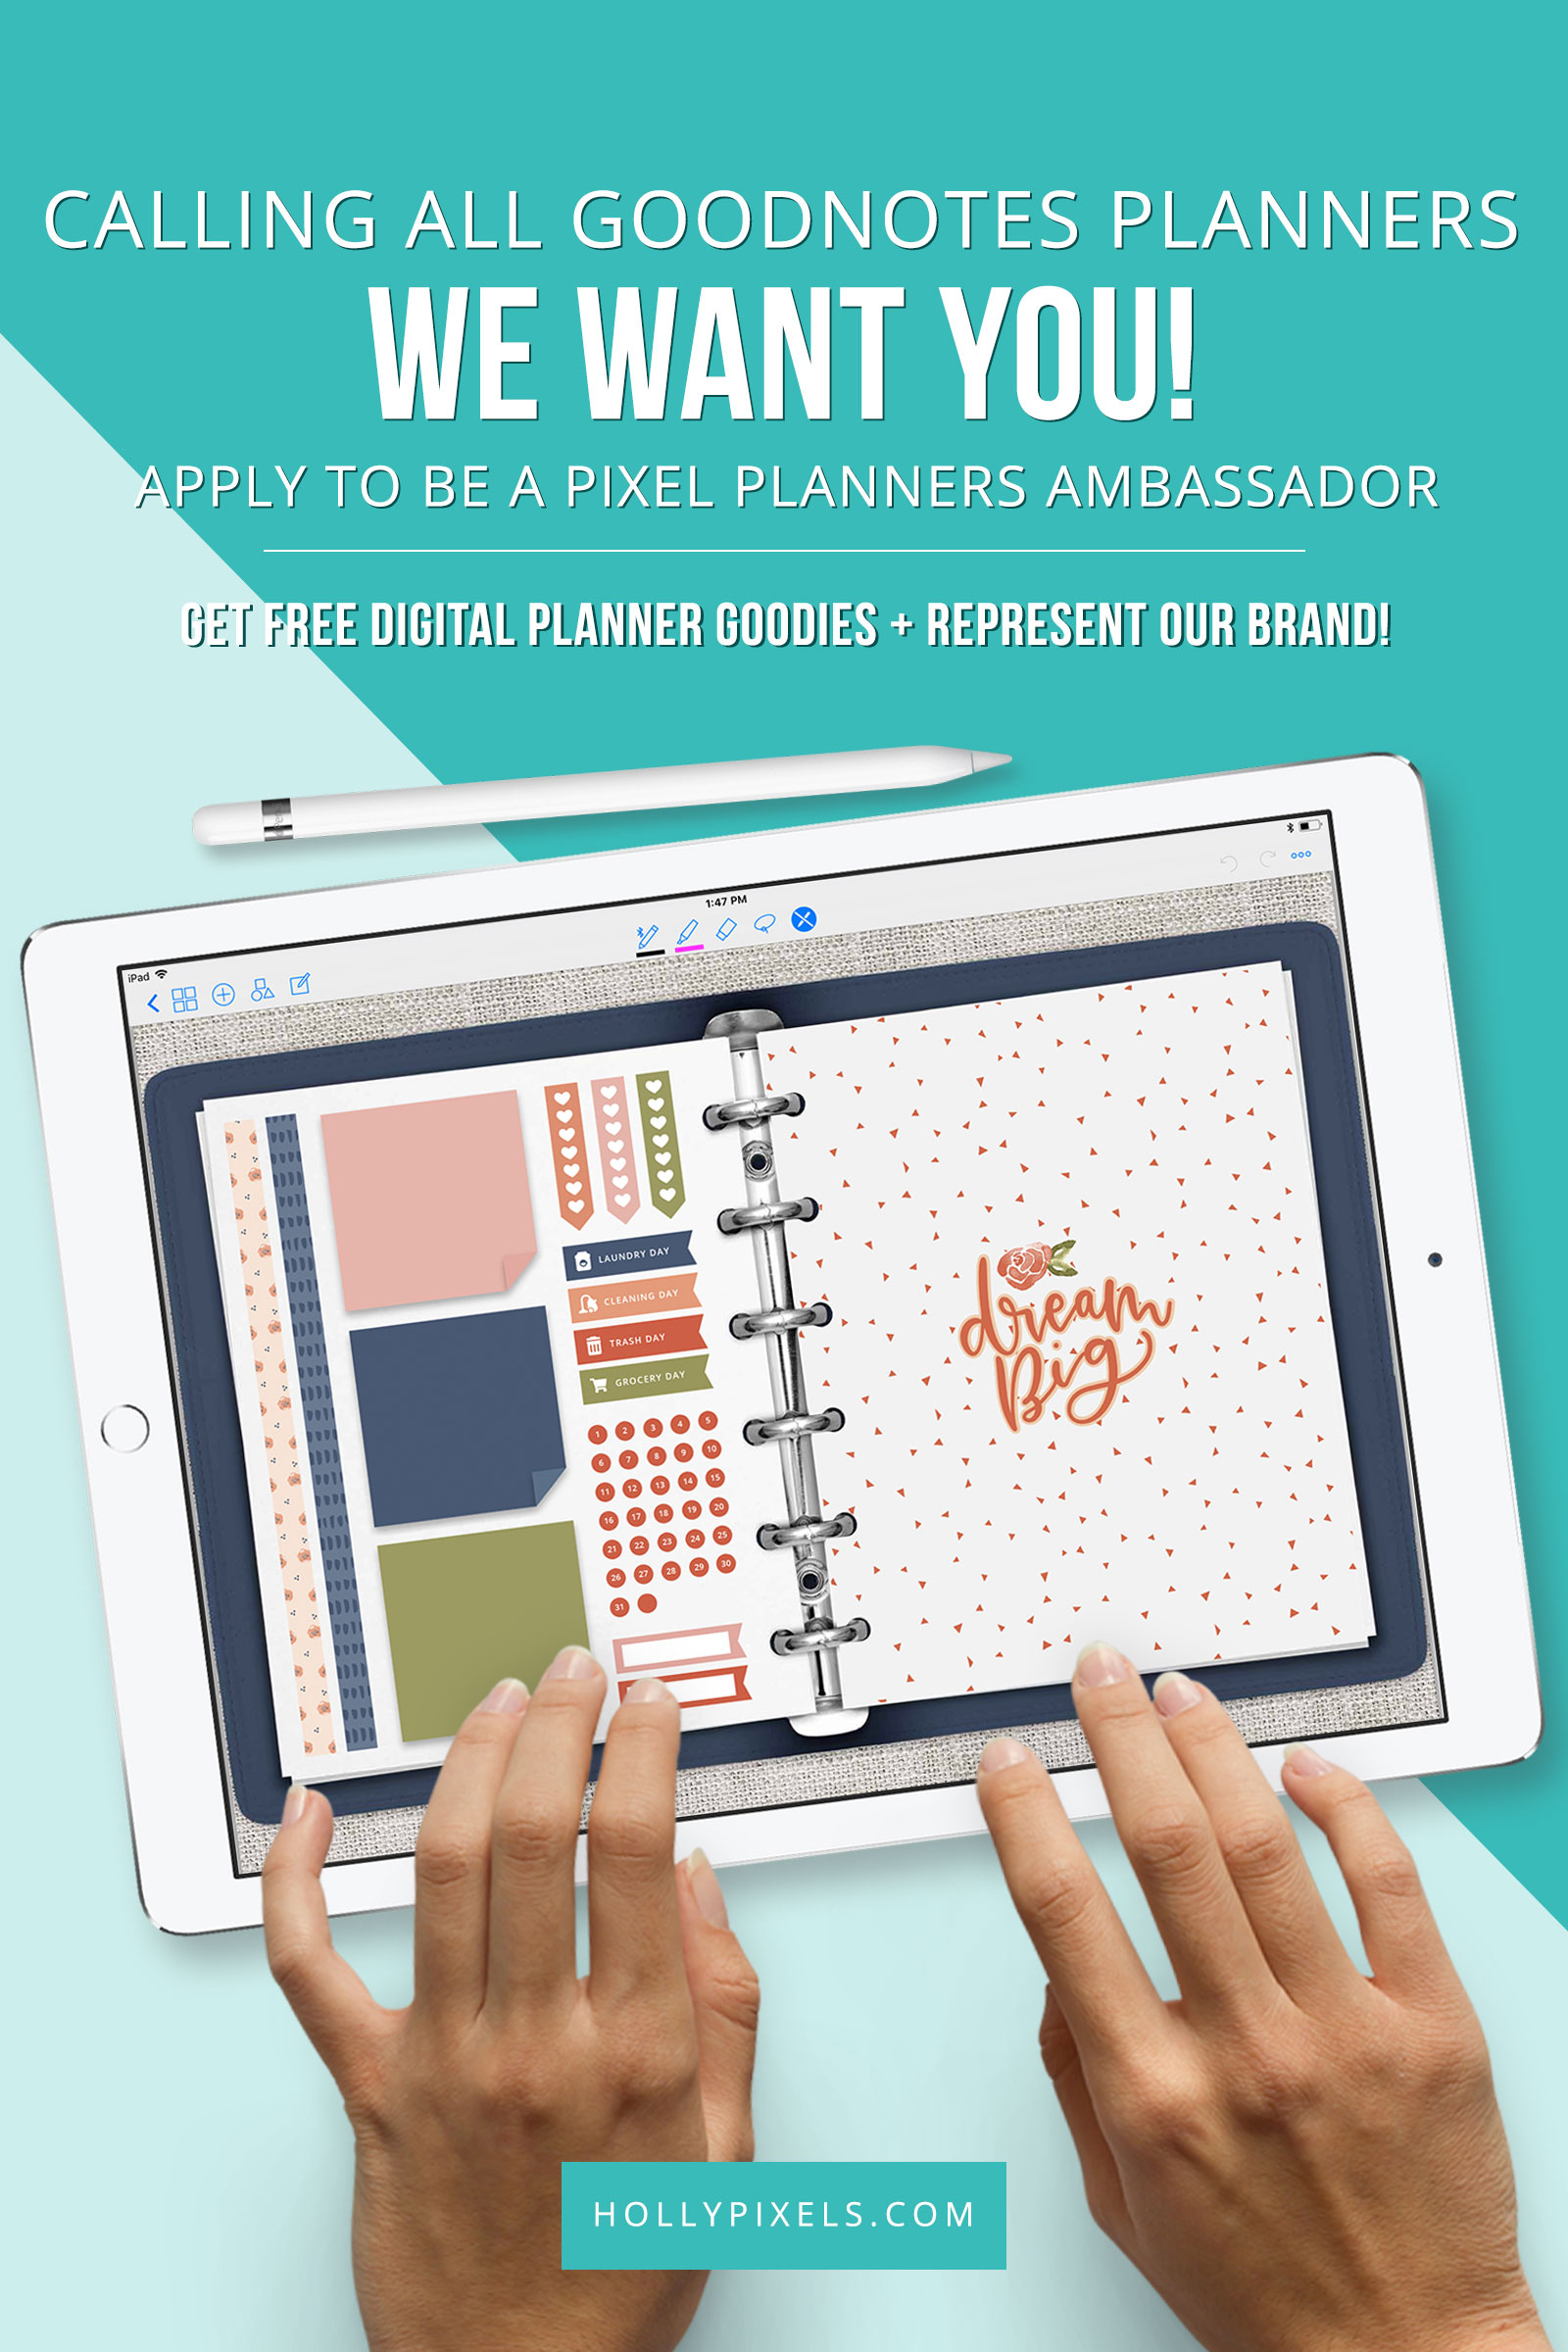 Holly Pixels is looking for creative digital planners obsessed with GoodNotes to join our creative planning team or better known as our new Pixel Planners Ambassadors!